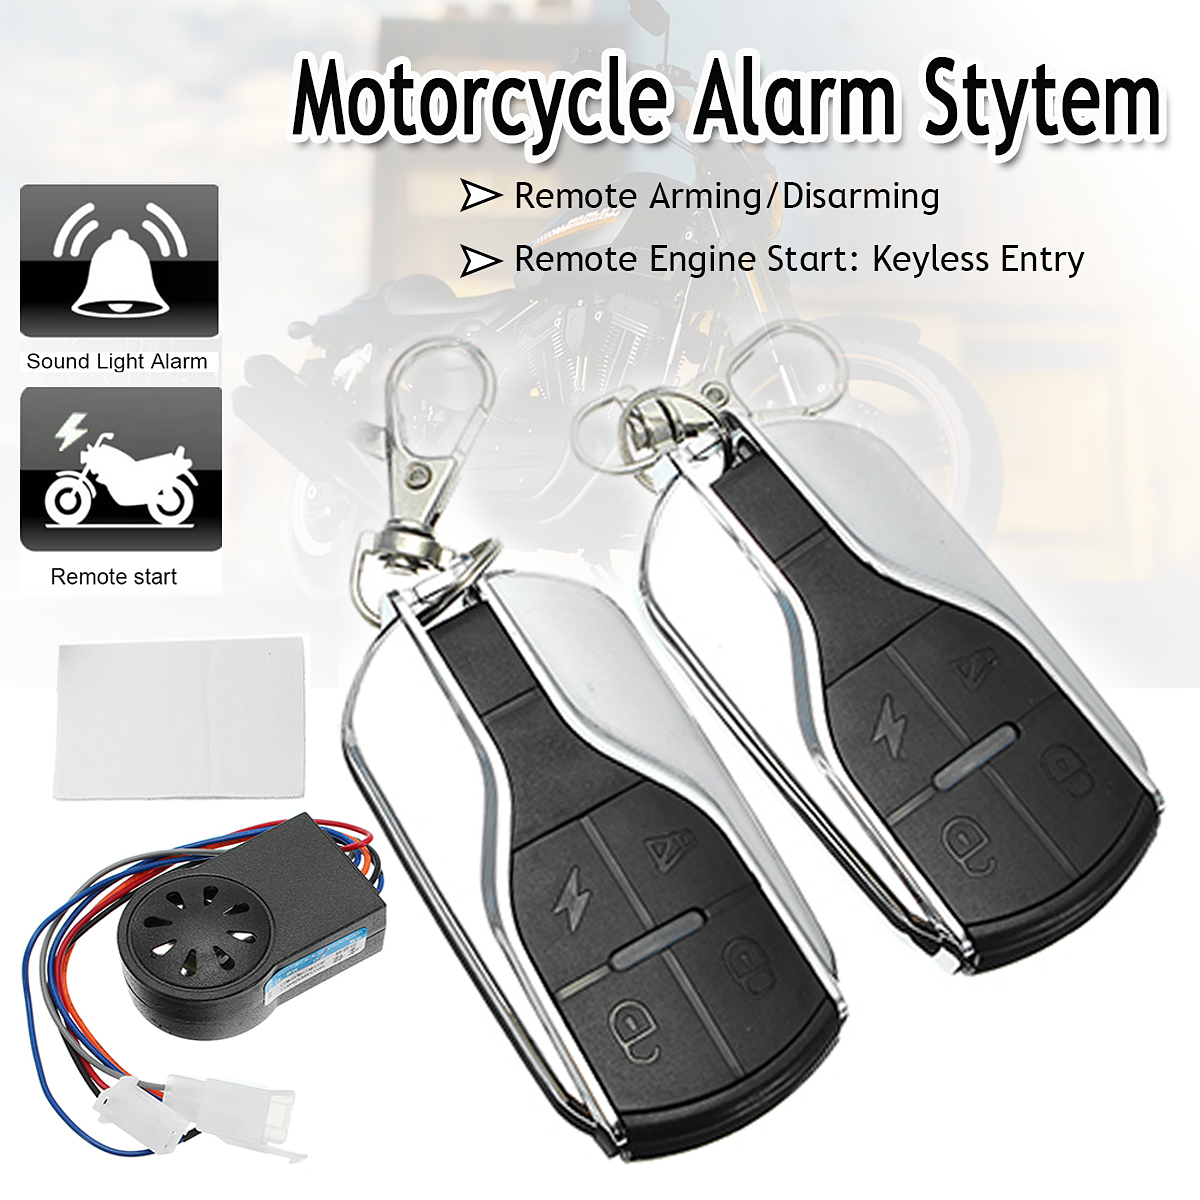 48V-60V Scooter Remote Control Anti Theft Alarm Security System Home Security Safety Motorcycle Bike